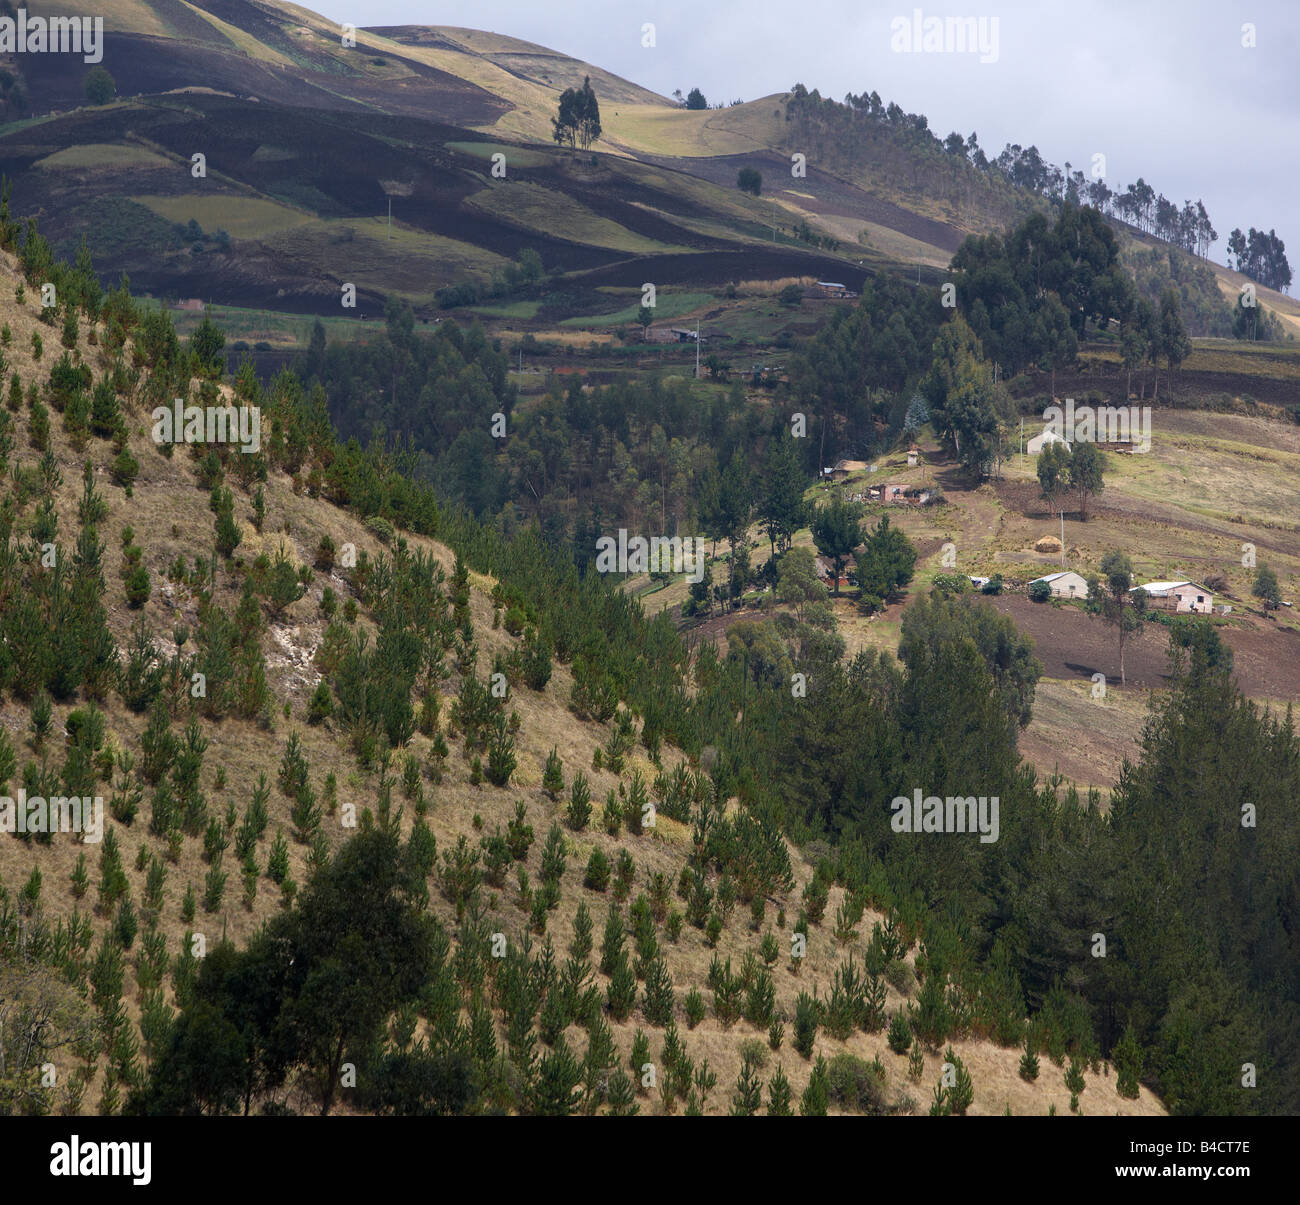 Slopes with fields, Alausi, Ecuador - Stock Image